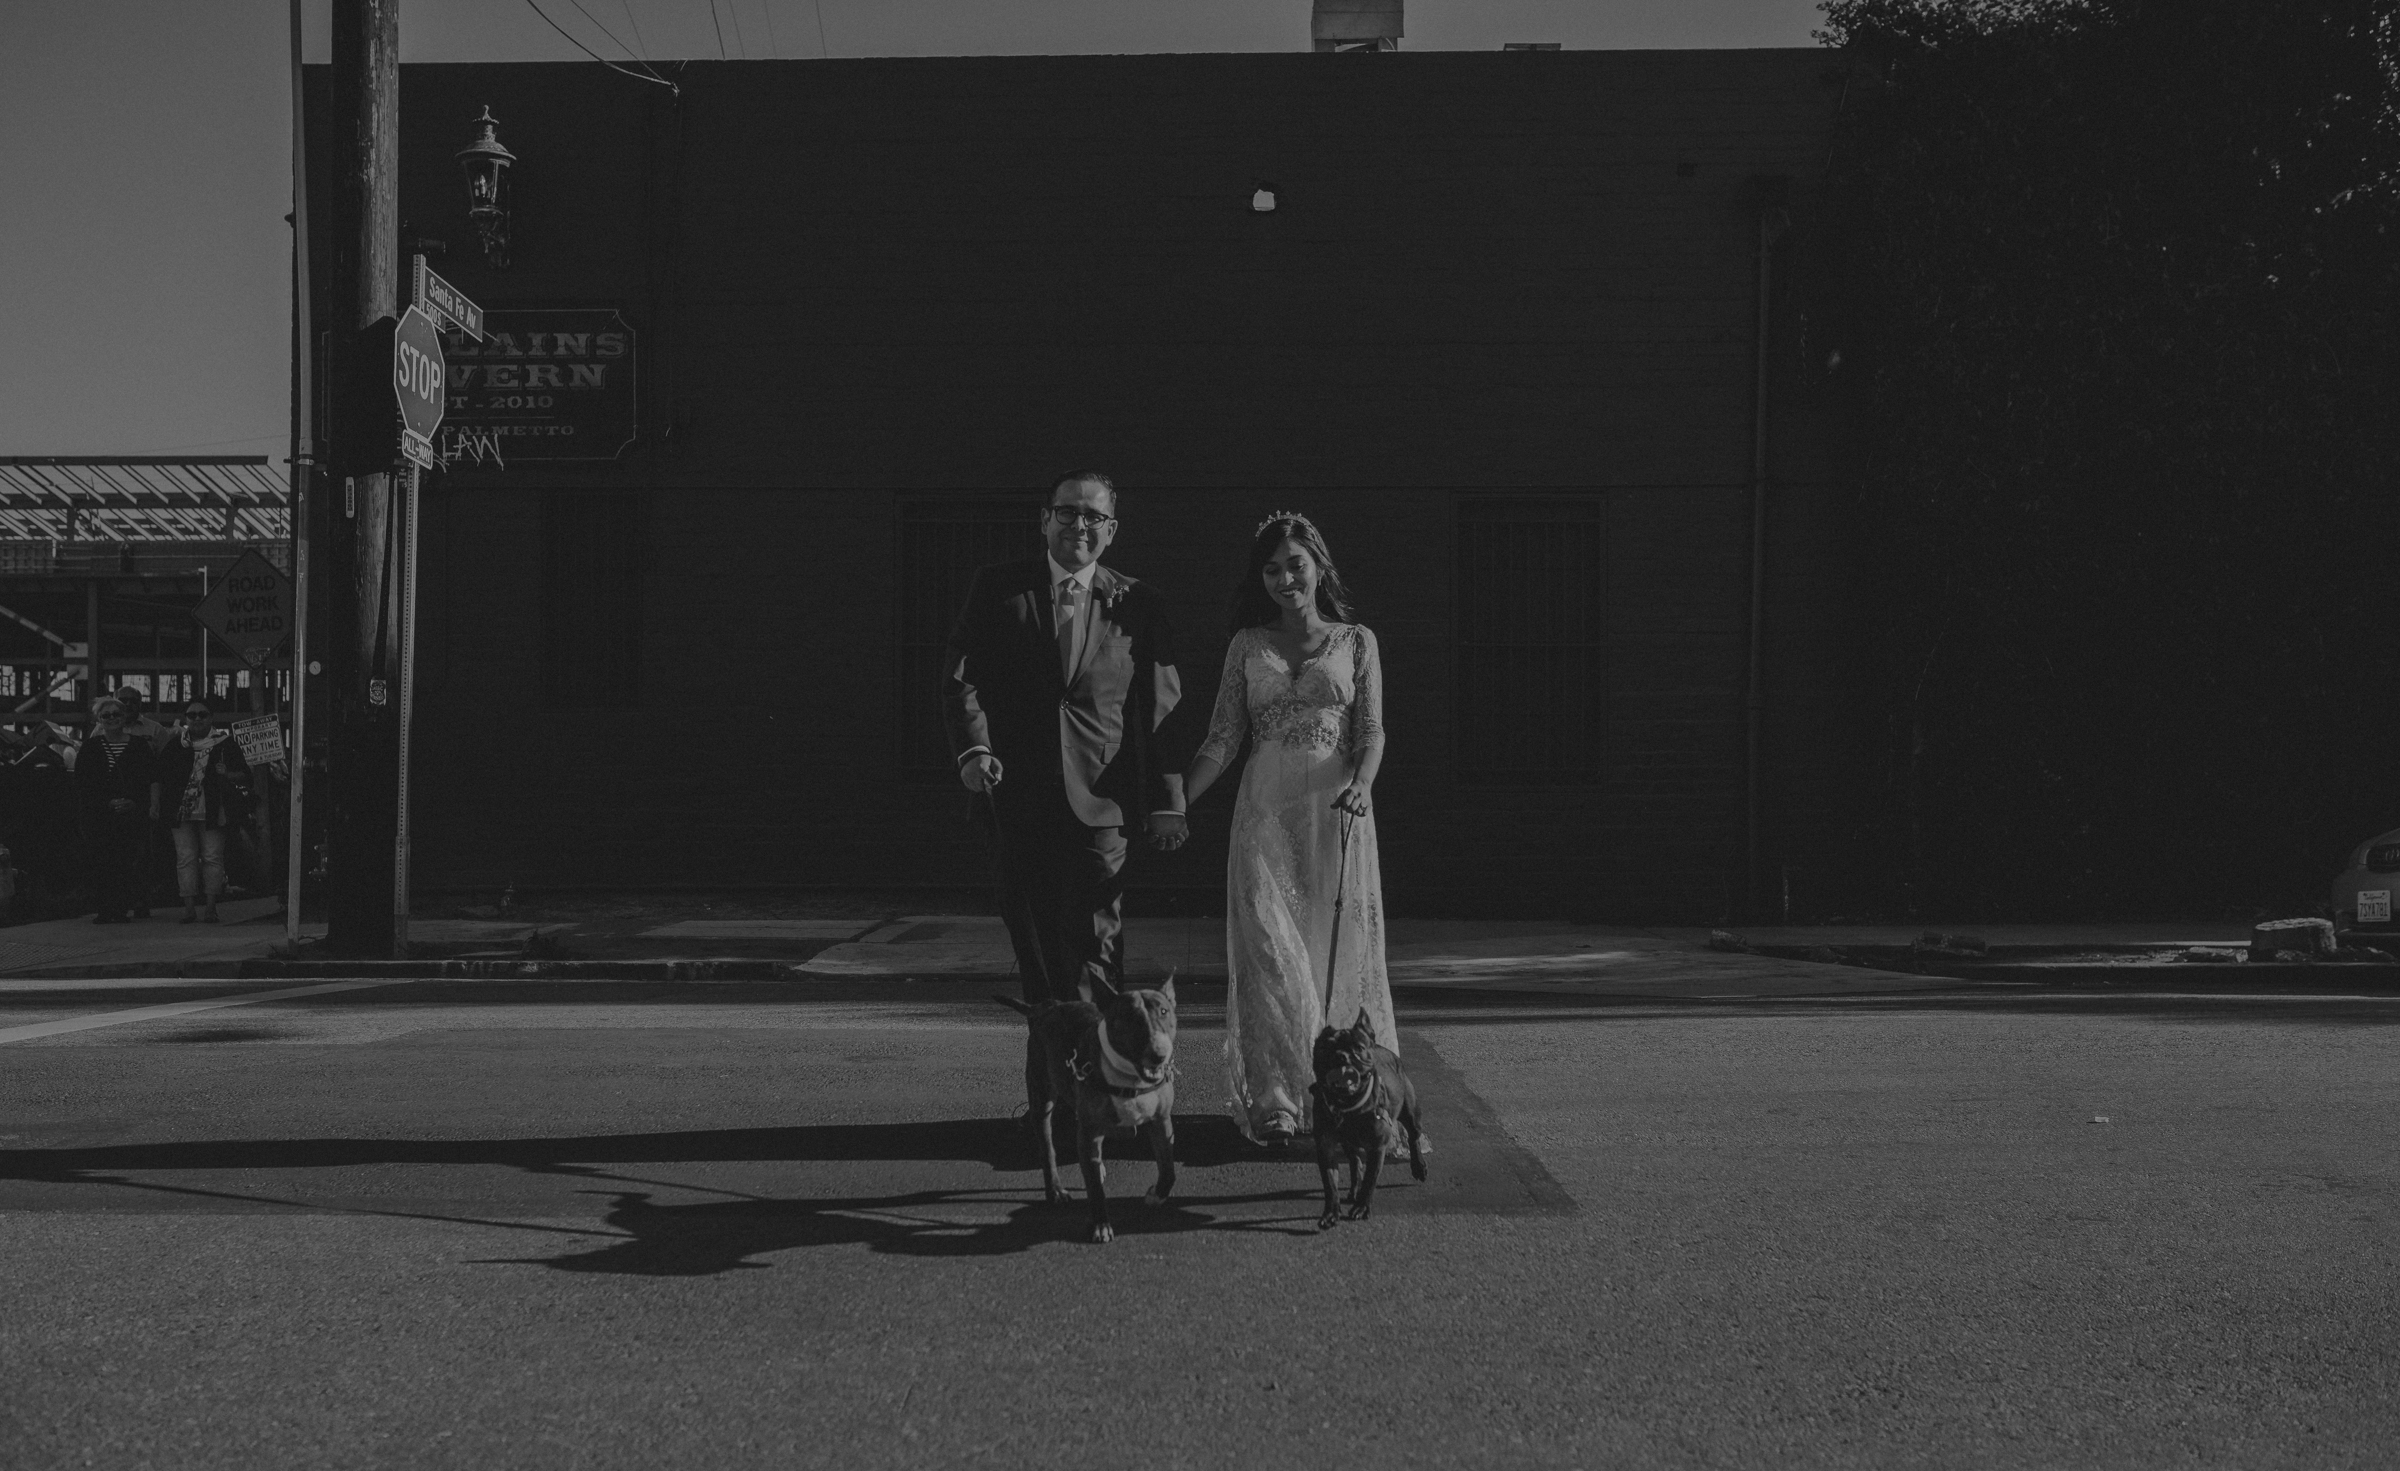 IsaiahAndTaylor.com - Downtown Los Angeles Wedding Photographer - Millwick Wedding - Smog Shoppe-023.jpg